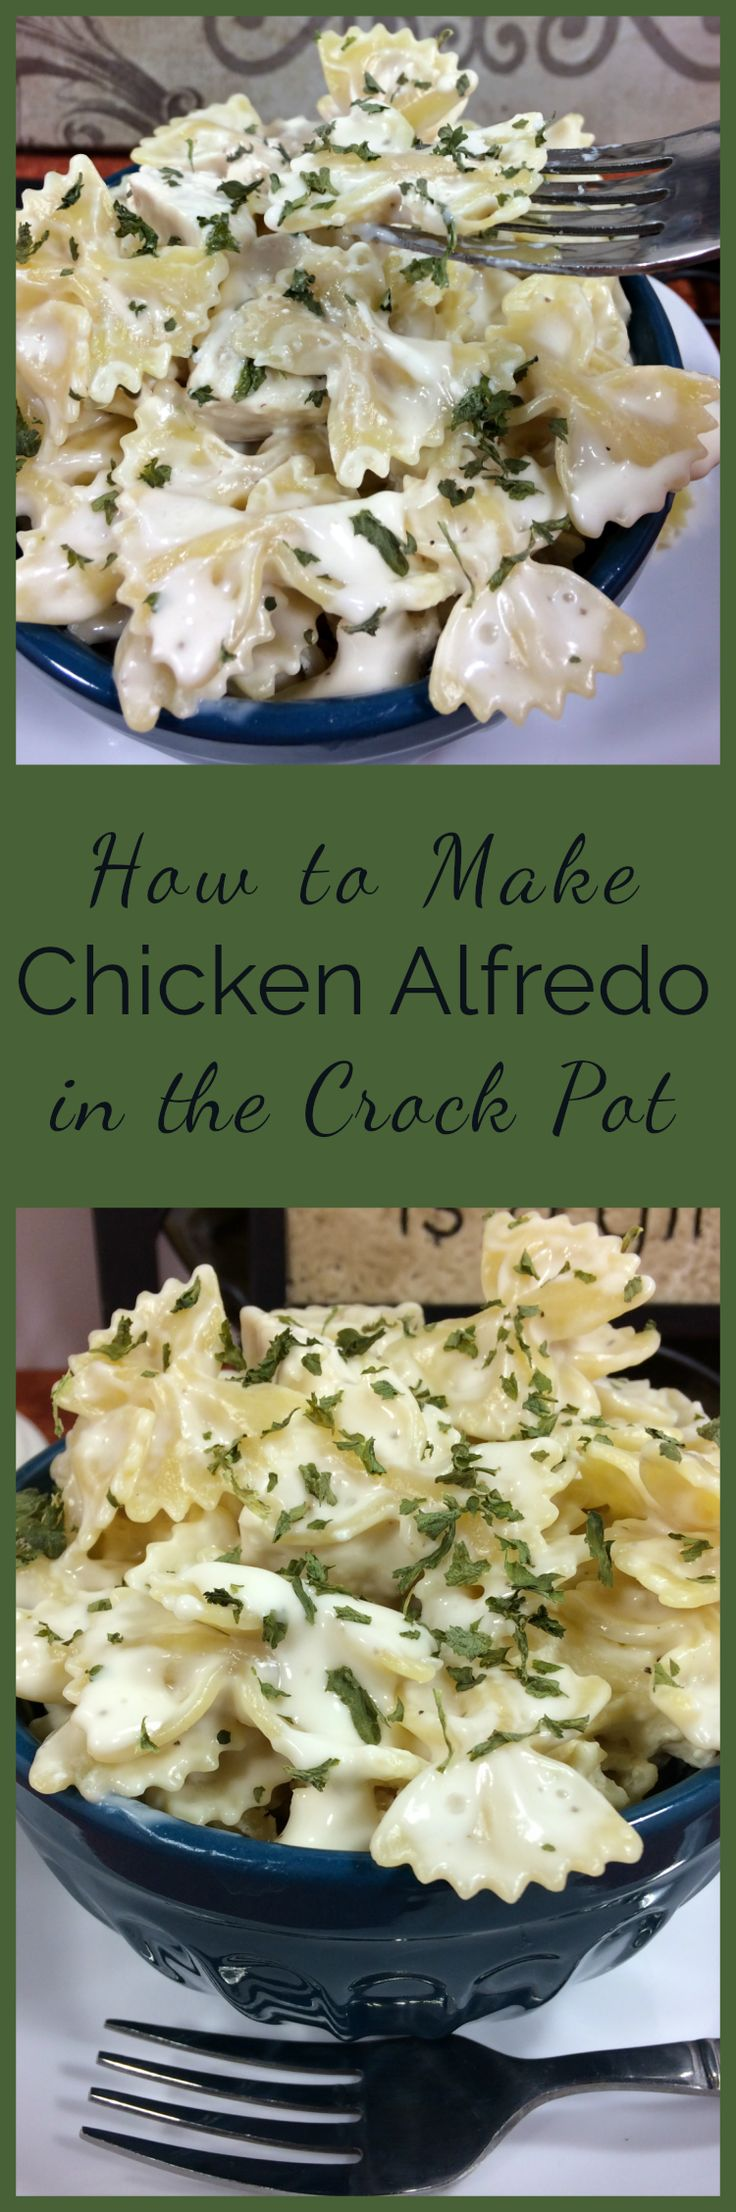 Simple , budget friendly, easy Chicken Alfredo in the crock pot. With homemade Alfredo, this delicious creamy chicken and pasta is sure to be a family favorite.